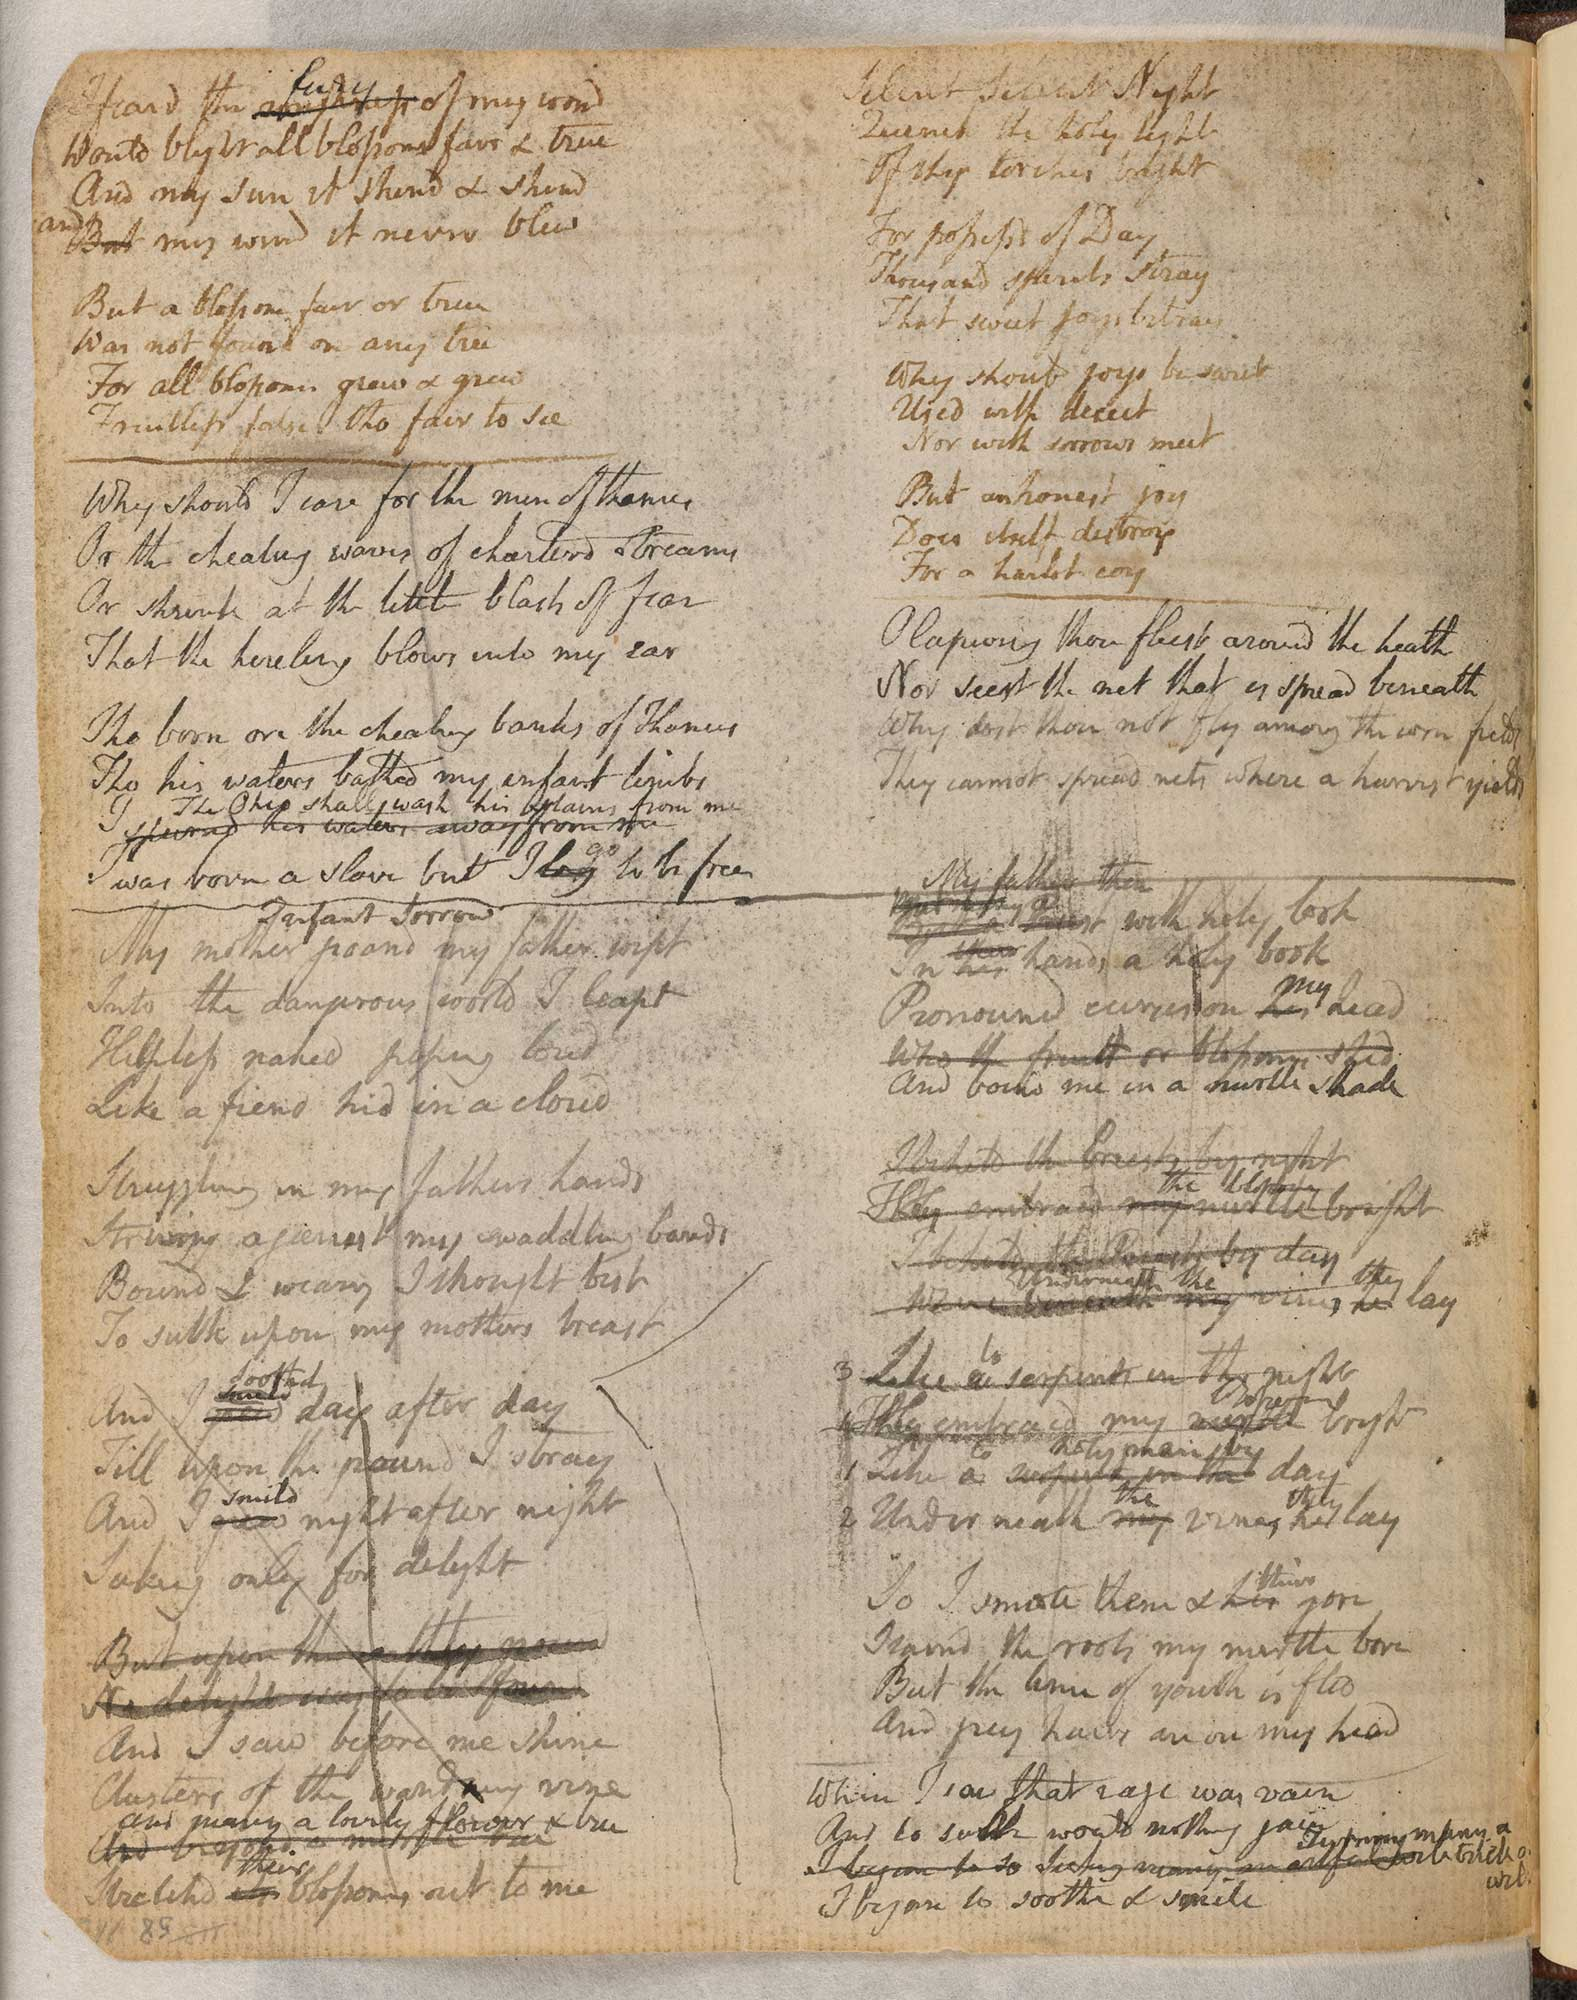 The Notebook of William Blake [folio: 58r]